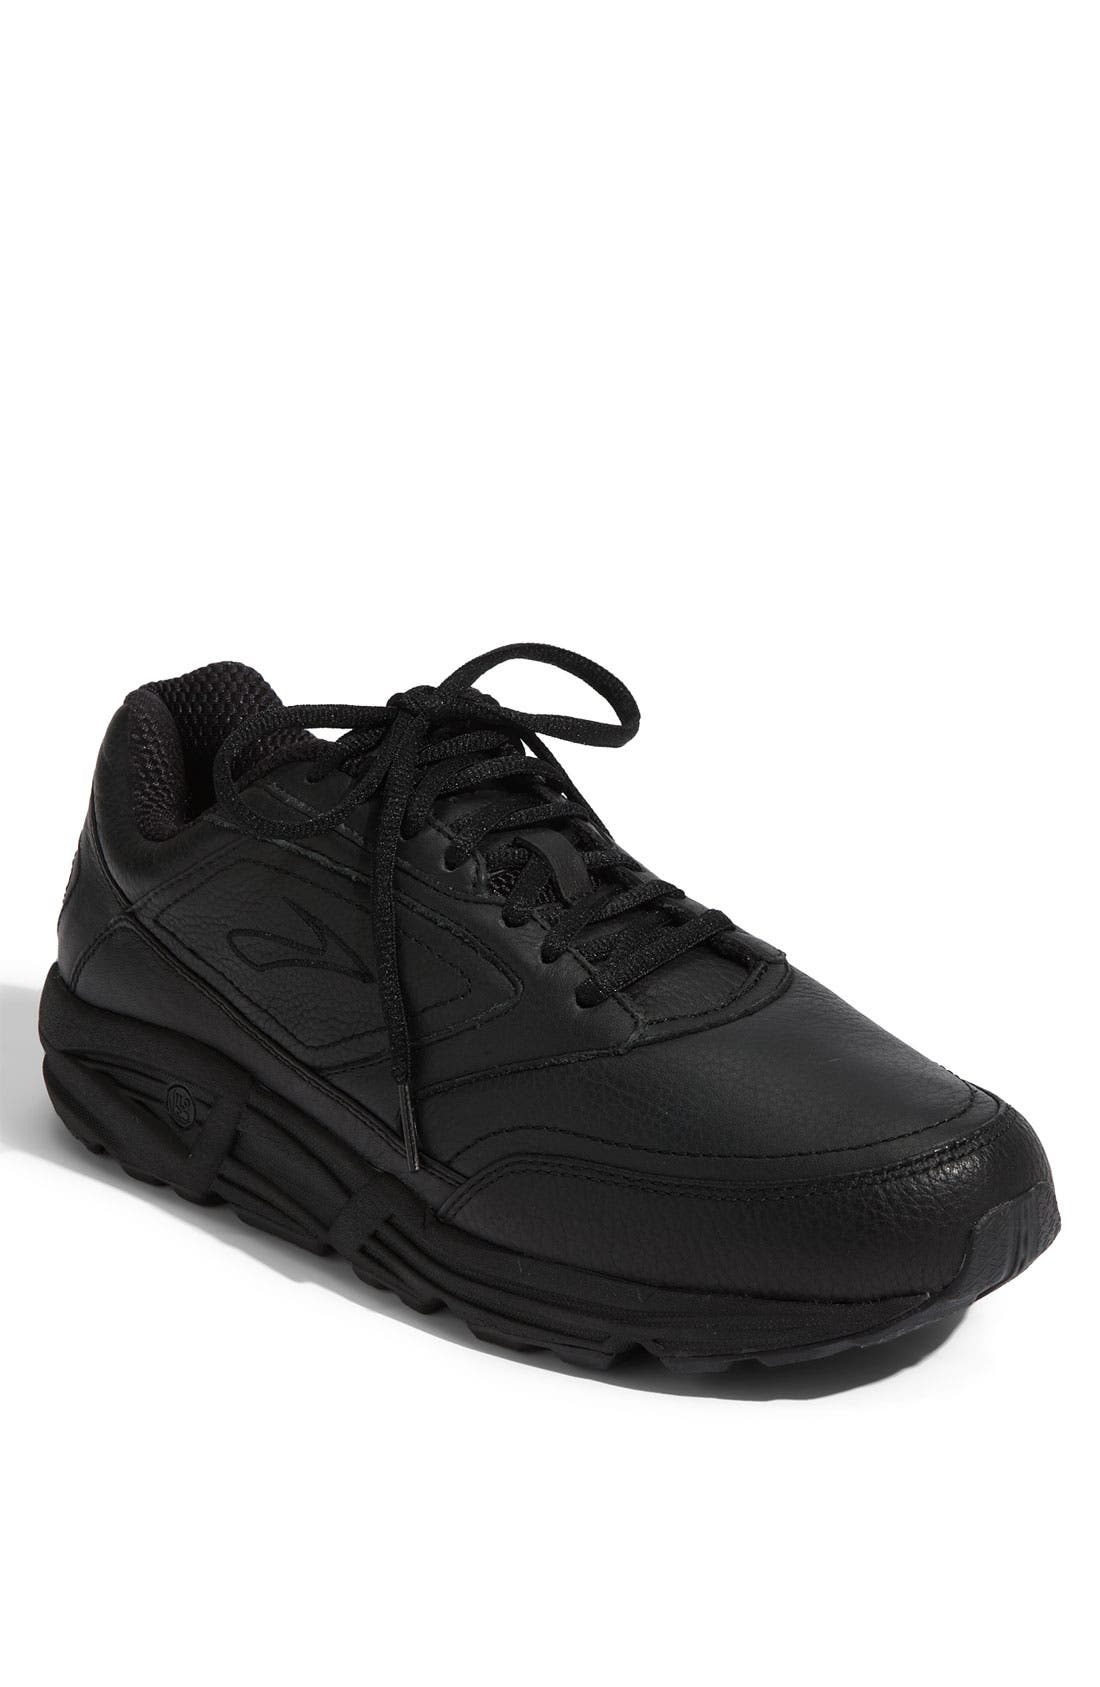 'Addiction' Walking Shoe,                             Main thumbnail 1, color,                             Black